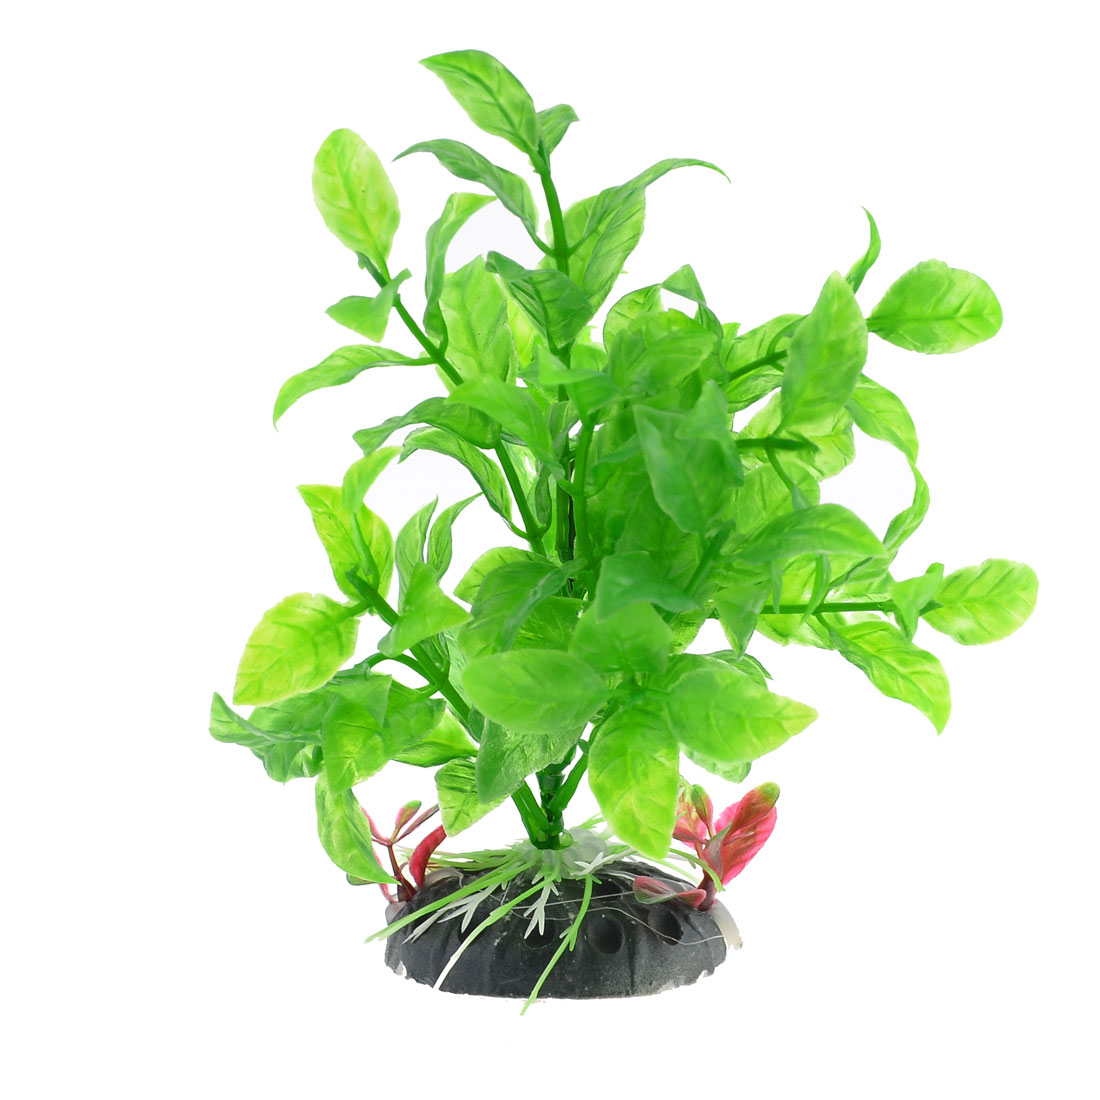 Ceramic-Base-Manmade-Plastic-Green-Vivid-Grass-Plants-5-9-High-for-Fish-Tank